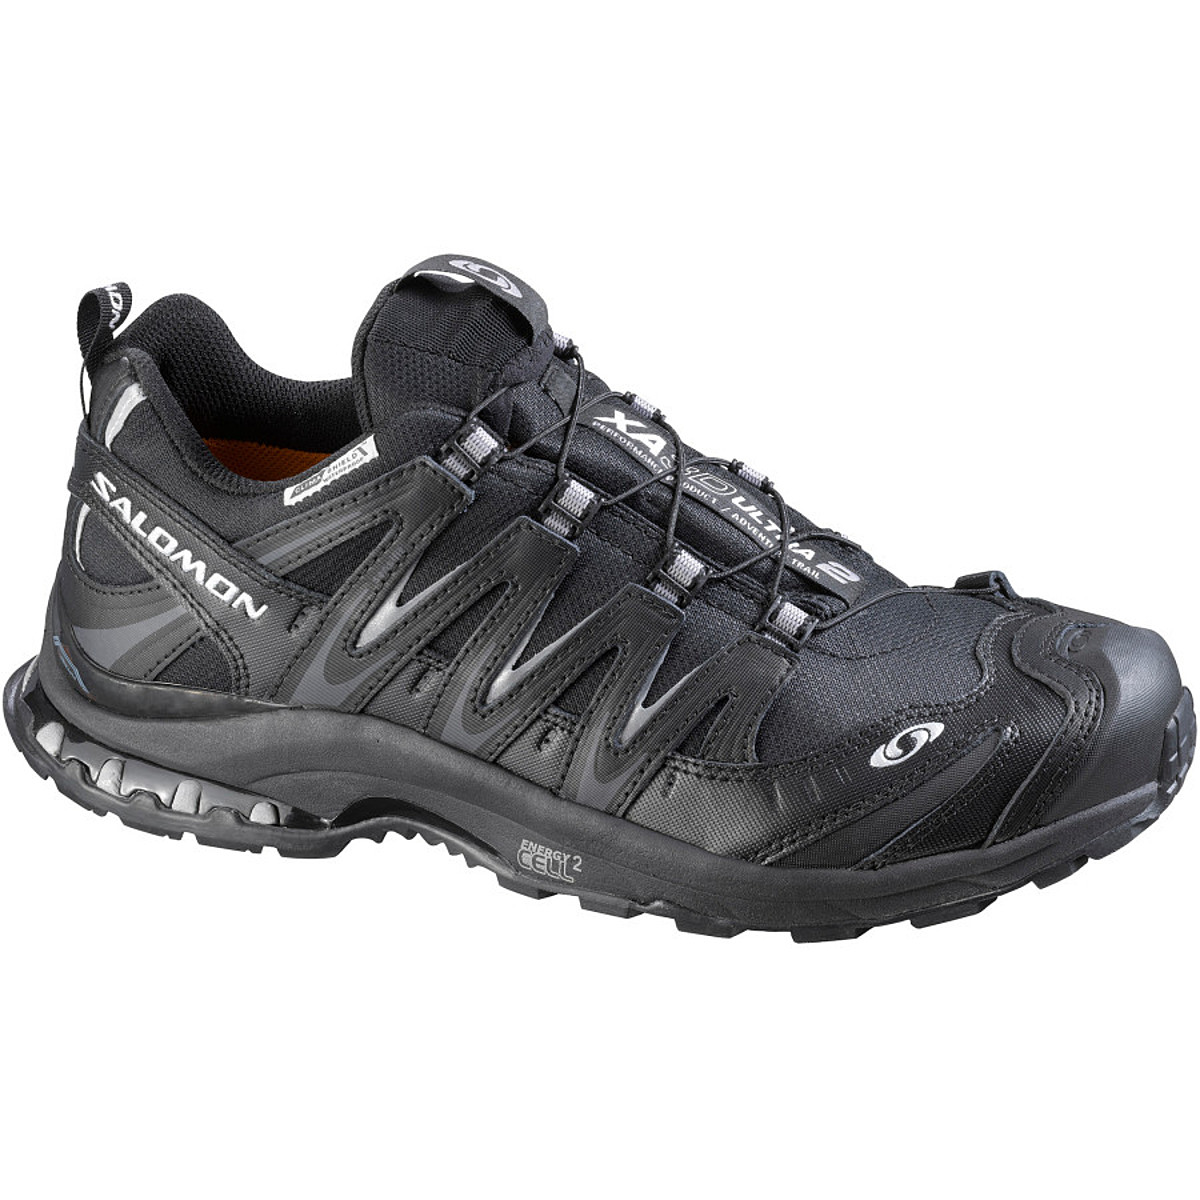 Salomon XA Pro 3D Ultra CS WP